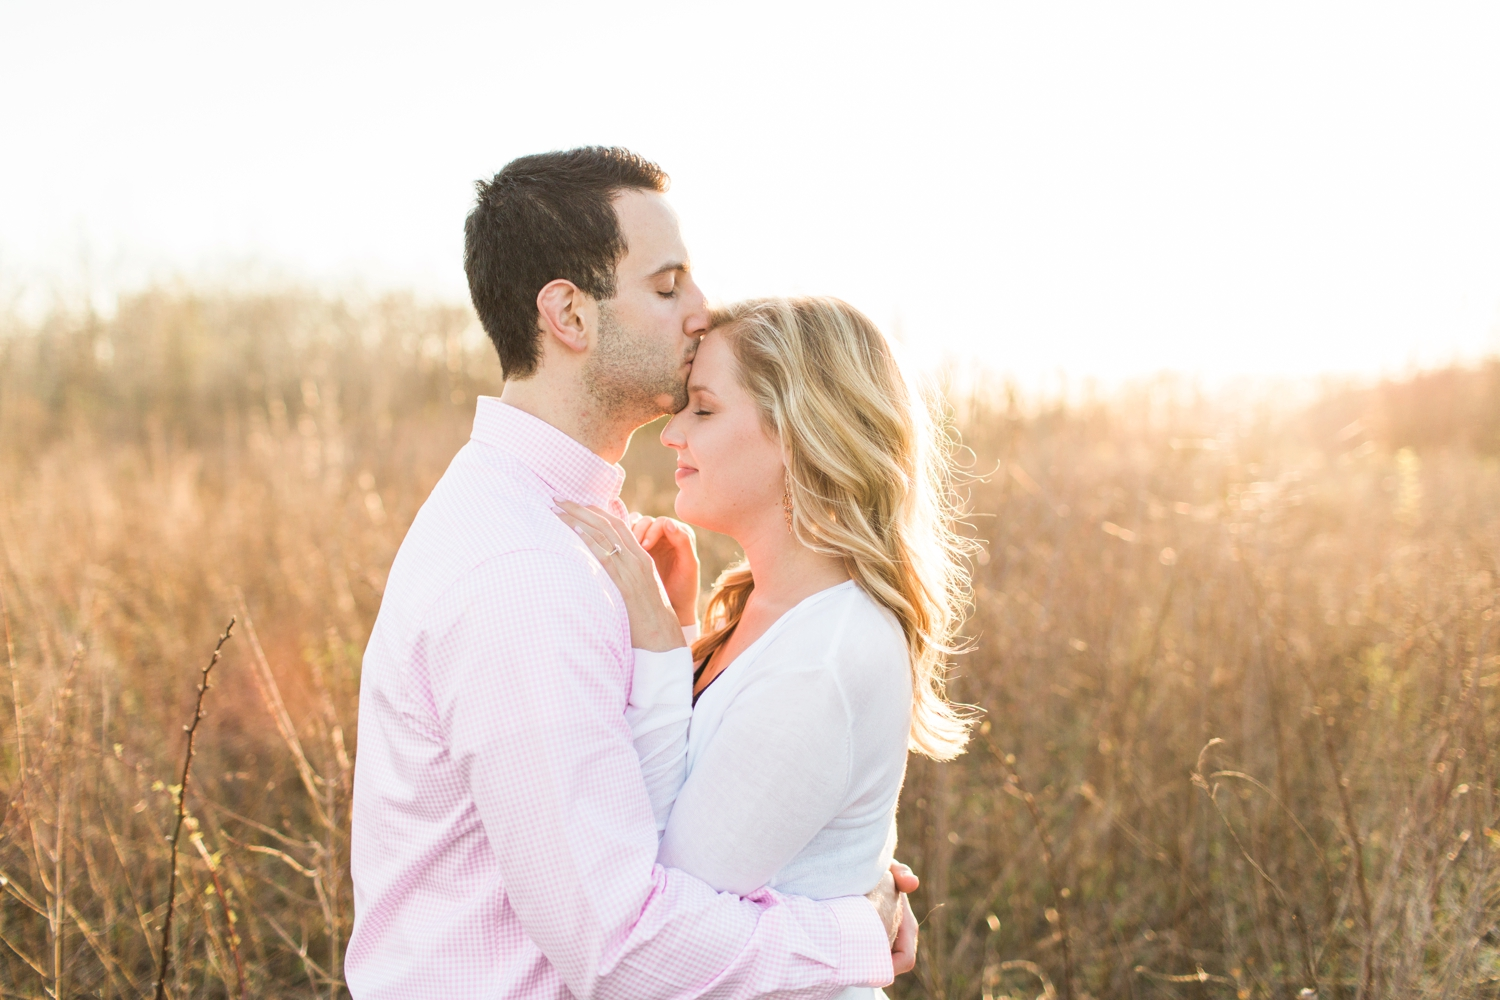 indianapolis_wedding_photographer_golden_hour_engagement_chloe_luka_photography_6128.jpg